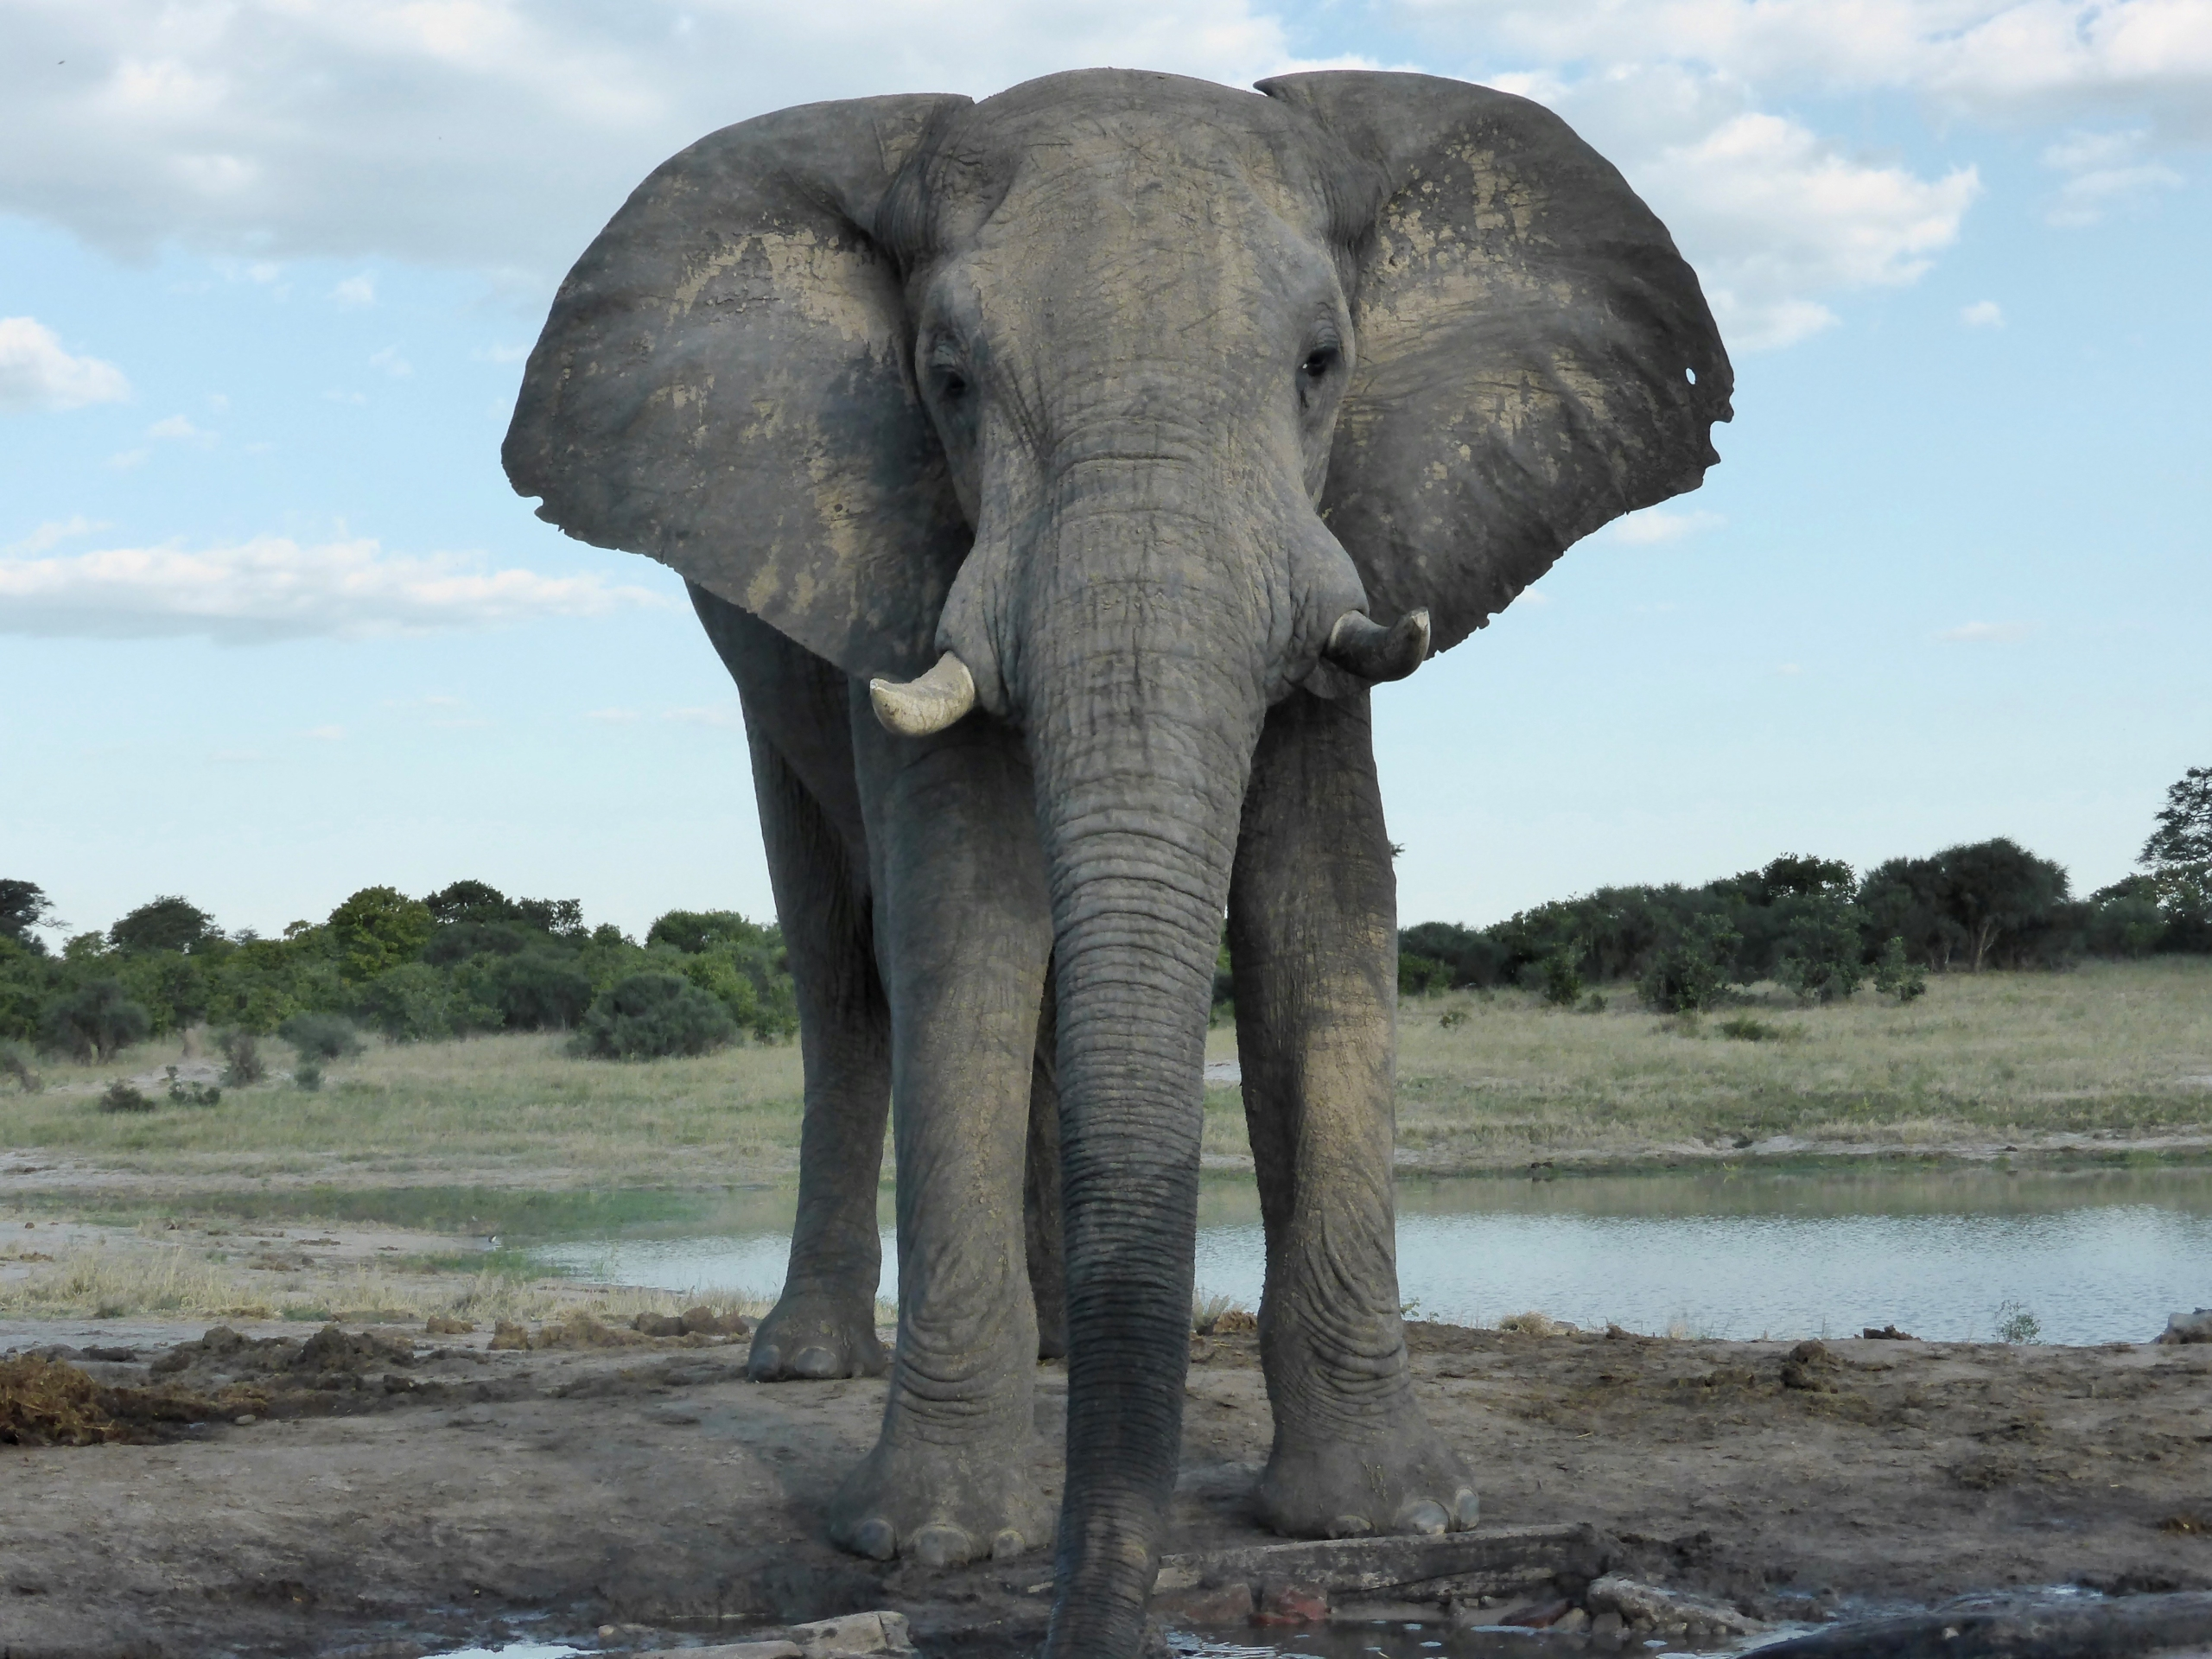 Elephant from the Look up hide at Jozibanini, Hwange NP